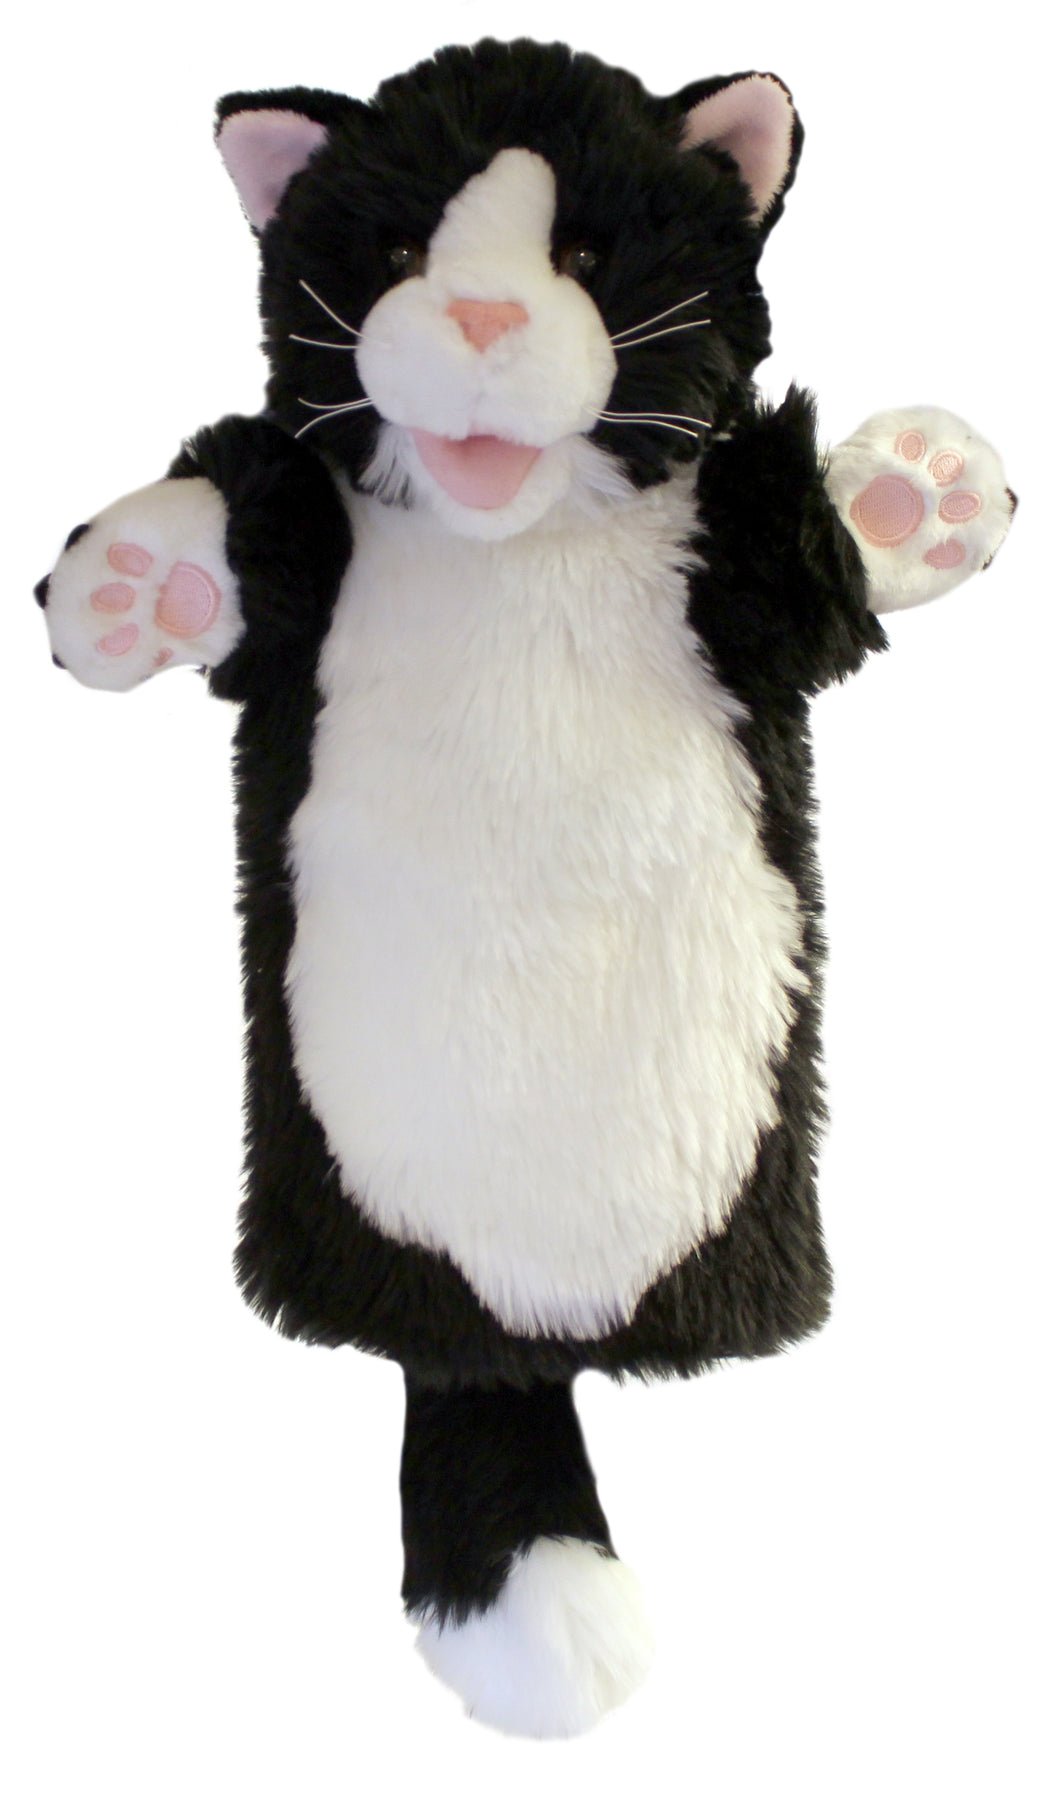 P353-PC006003-marionnette-Chat-noir-et-blanc-The-Puppet-Company-Long-Sleeved-Glove-Puppets